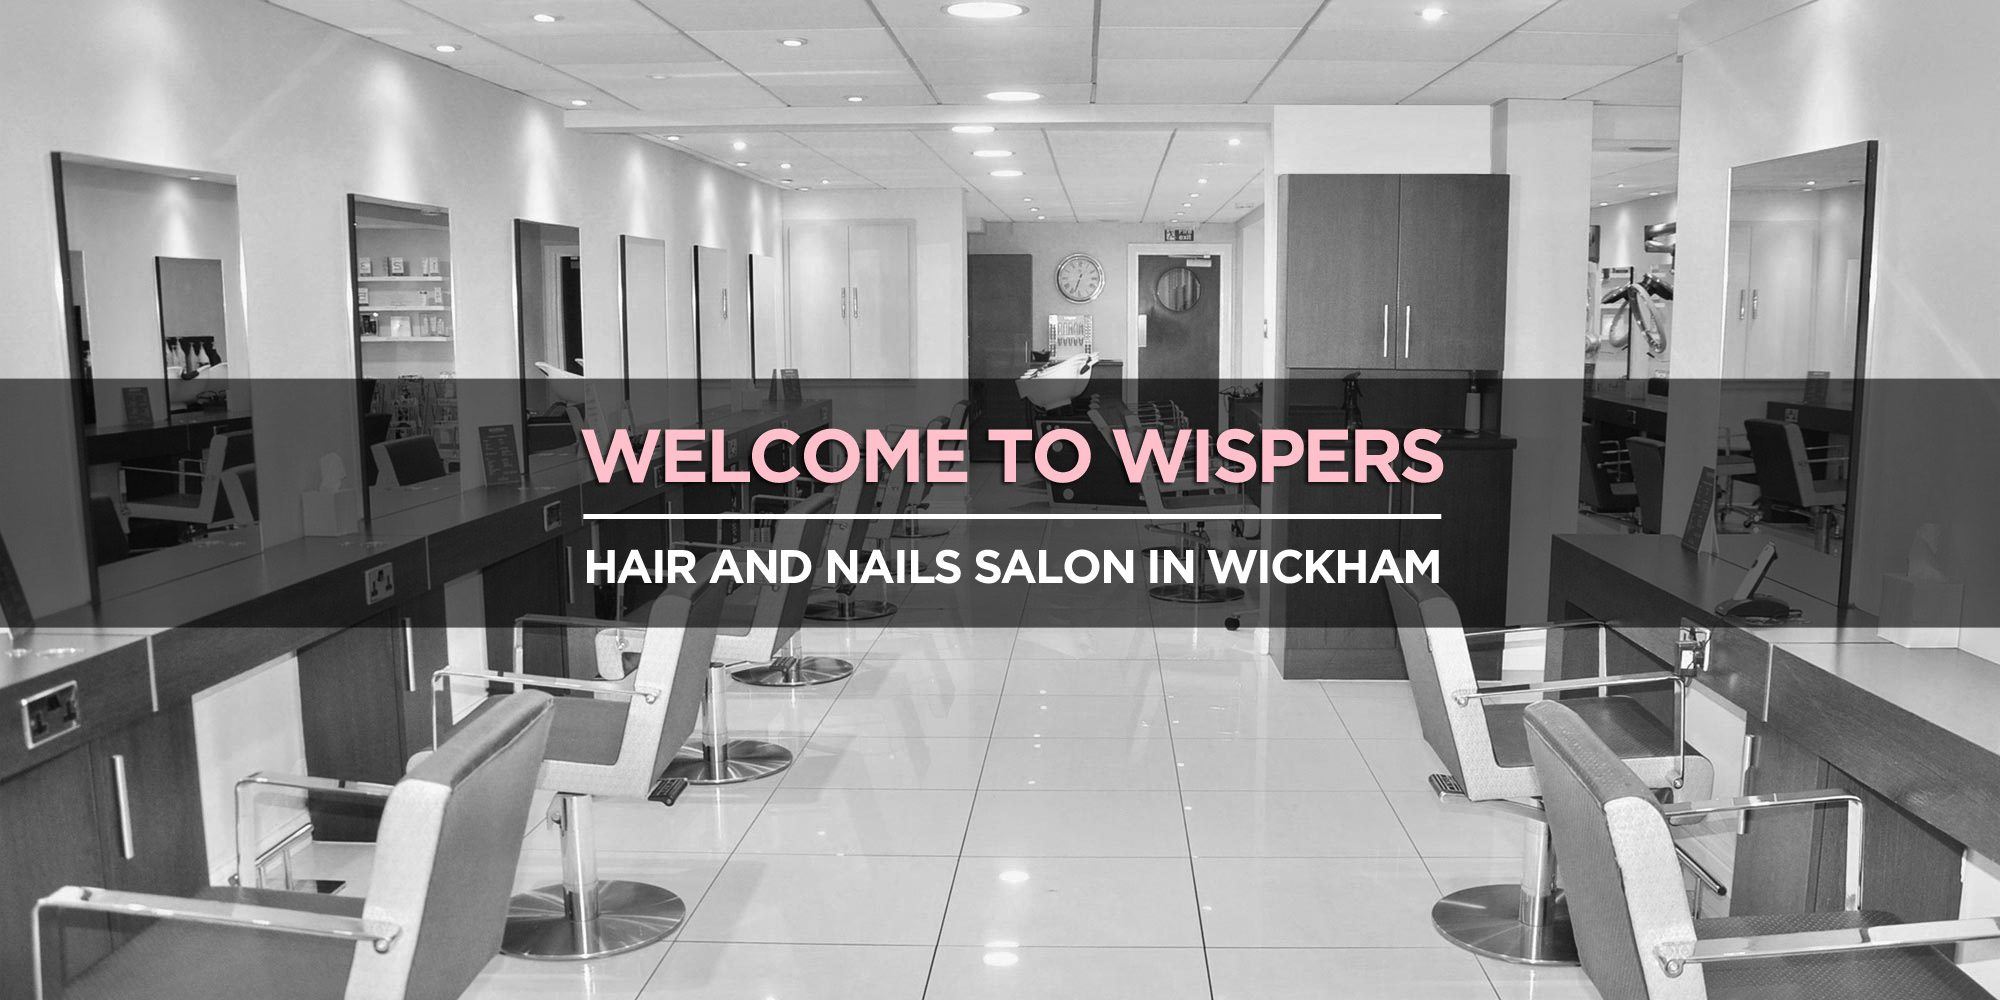 wispers hair salon